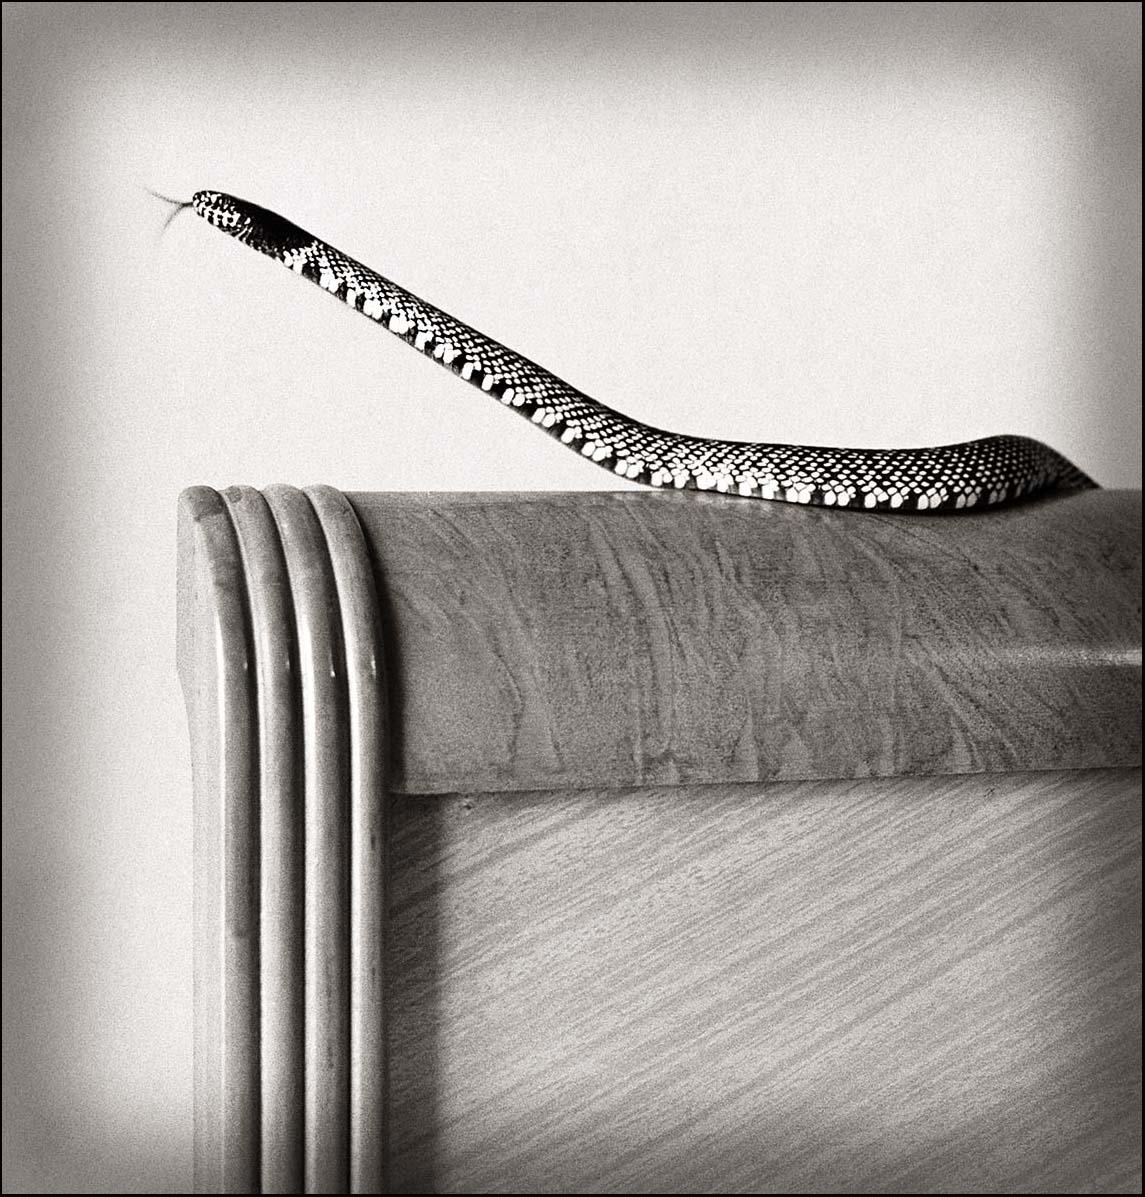 King Snake on Headboard